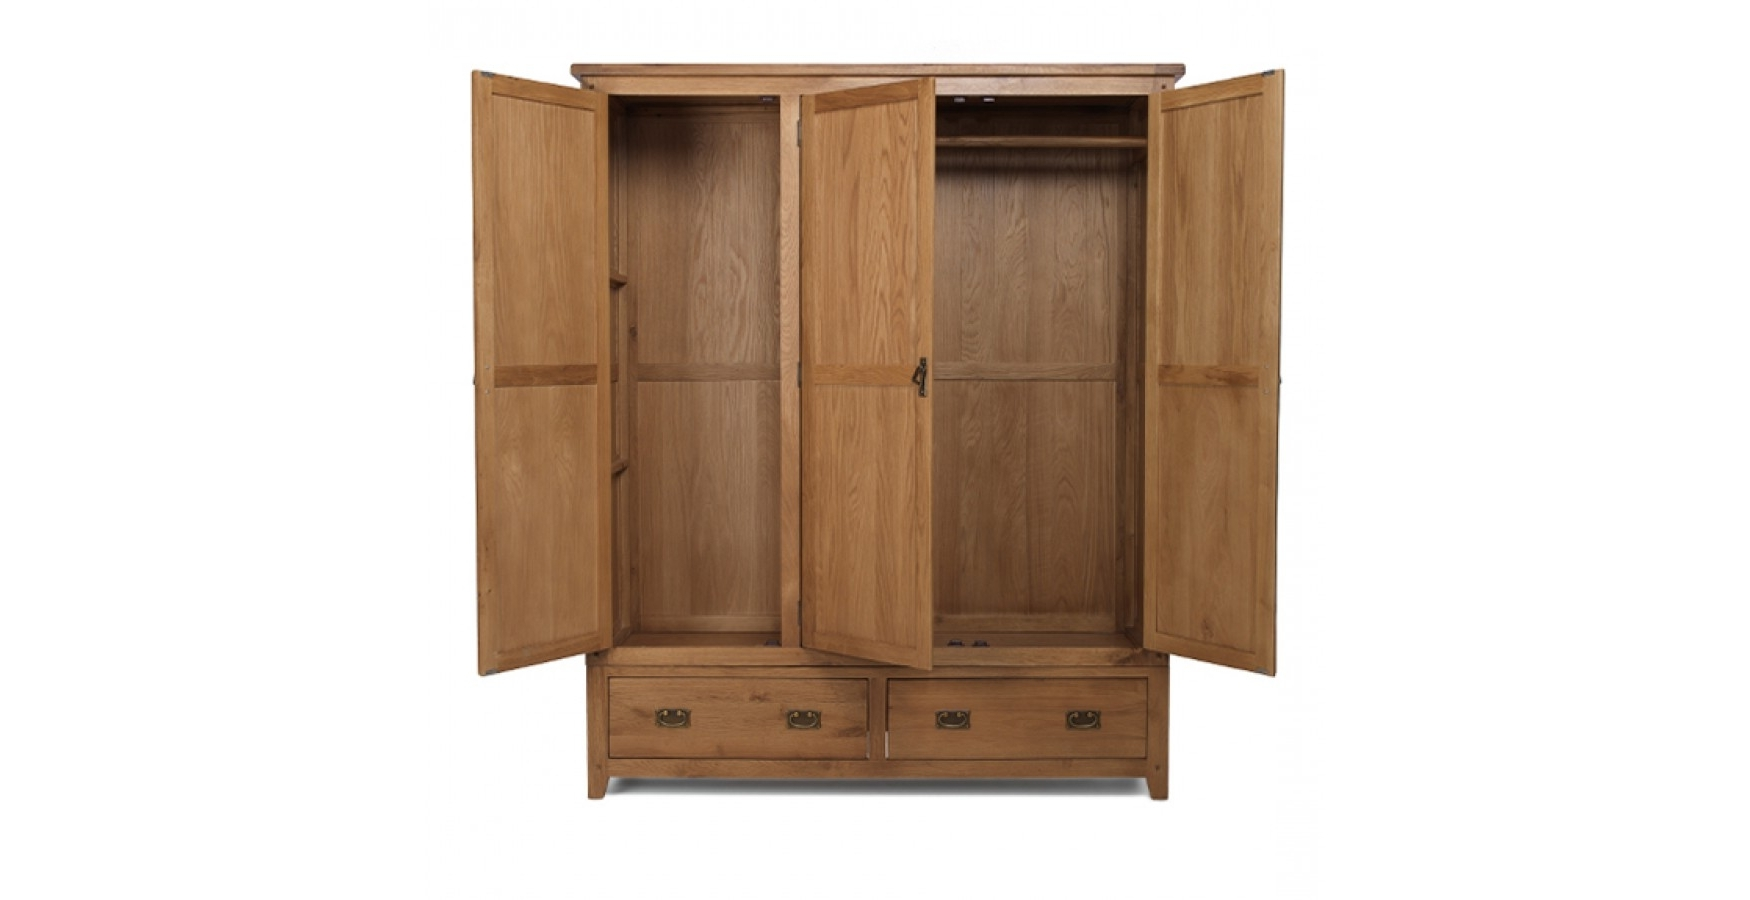 Rustic Oak Triple Wardrobe With Drawers – Lifestyle Furniture Uk Pertaining To Best And Newest Triple Oak Wardrobes (View 13 of 15)